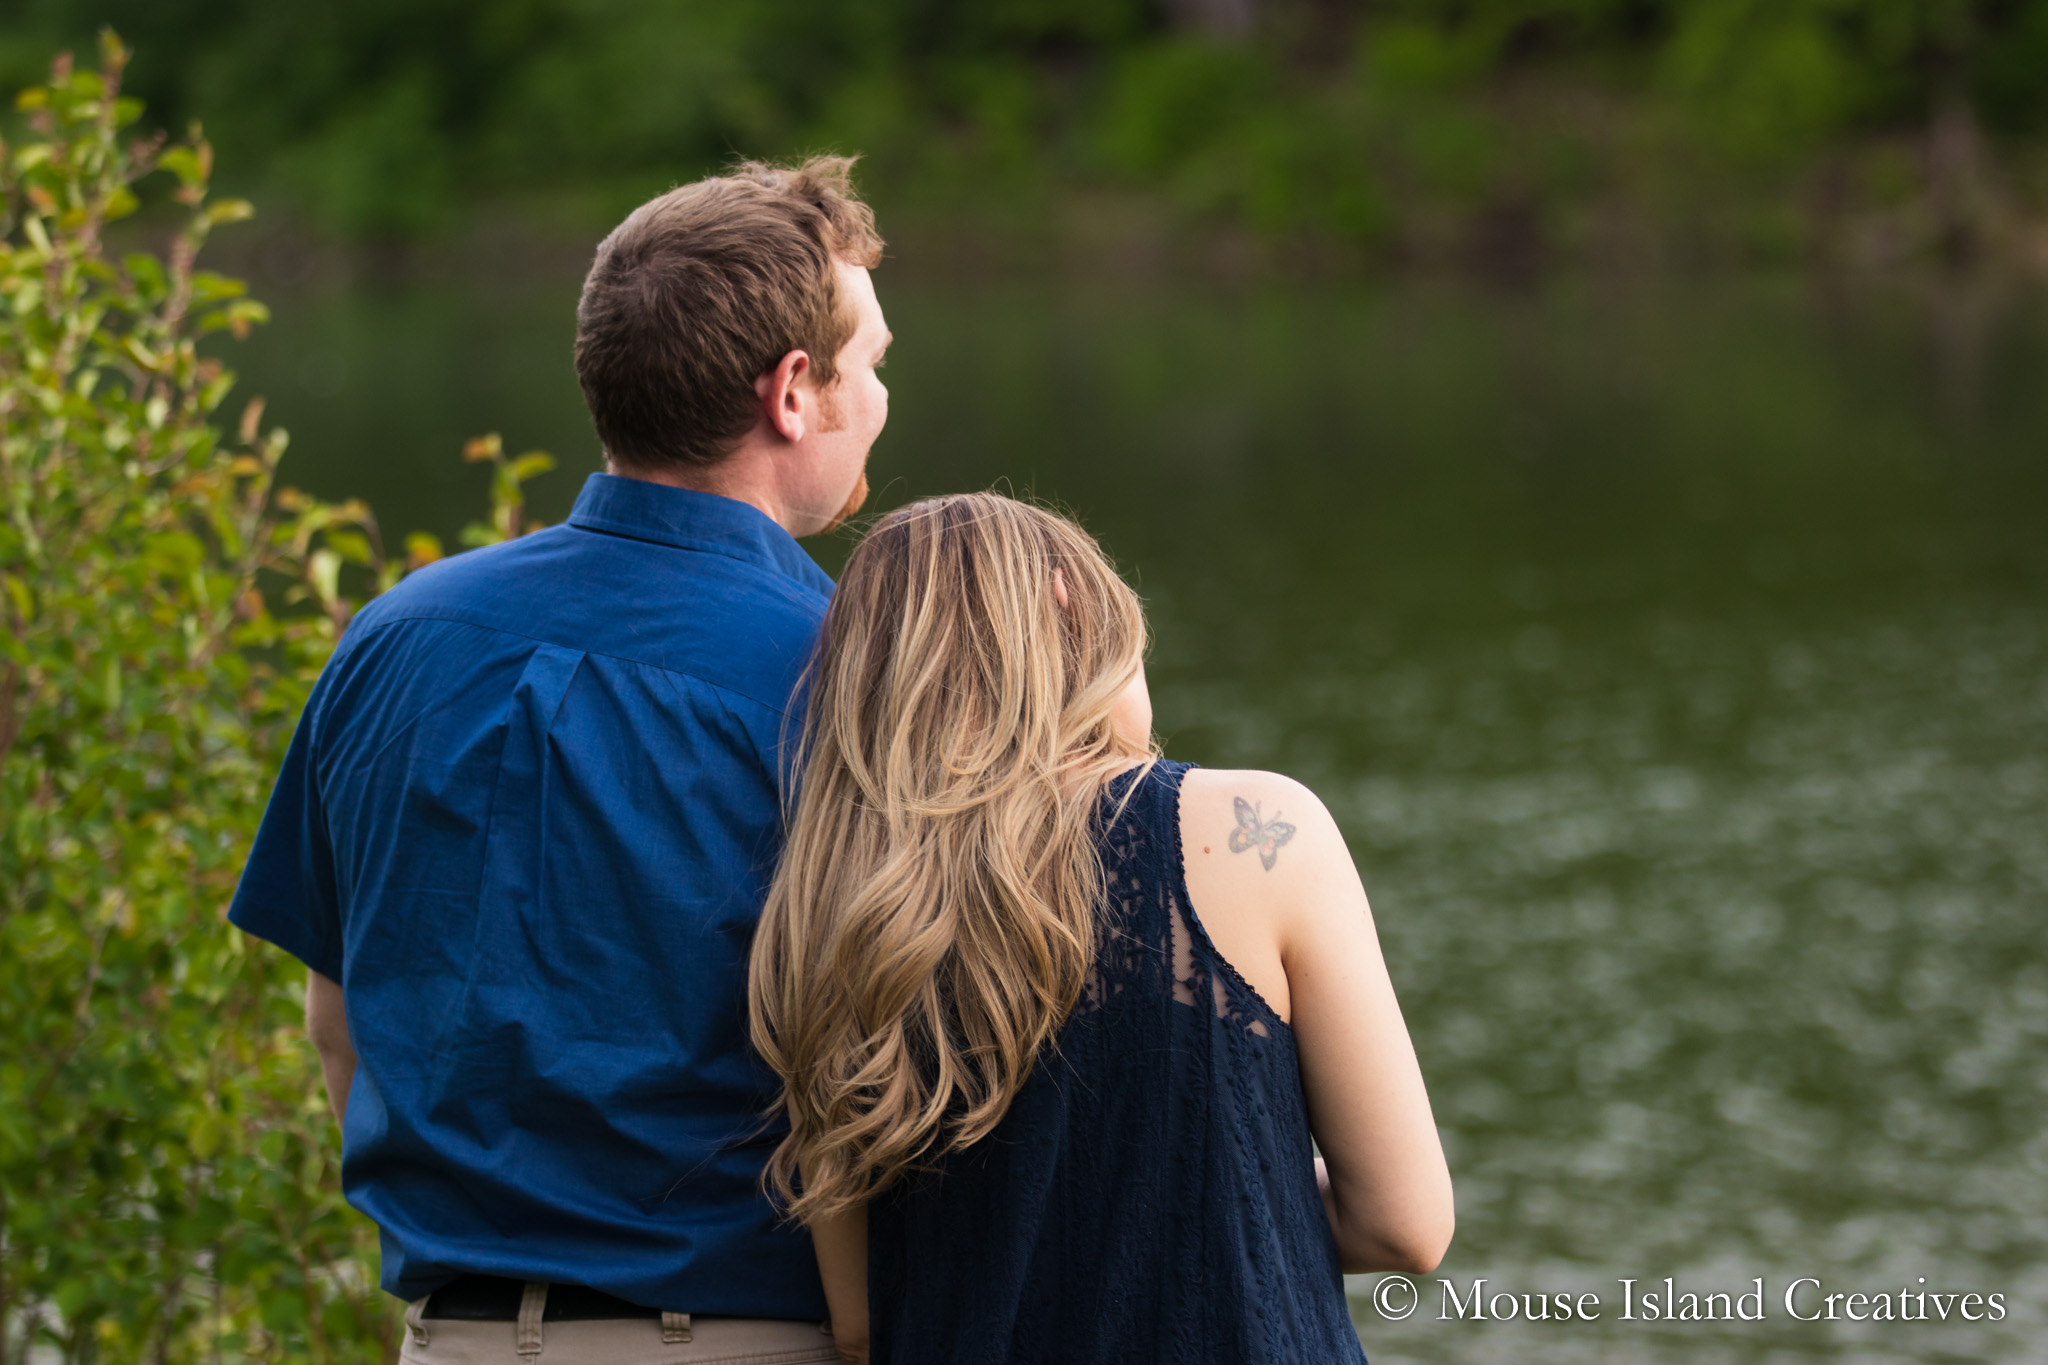 Mantle Lake Park Couples Photography | Presque Isle, Maine | Stacey & Kevin